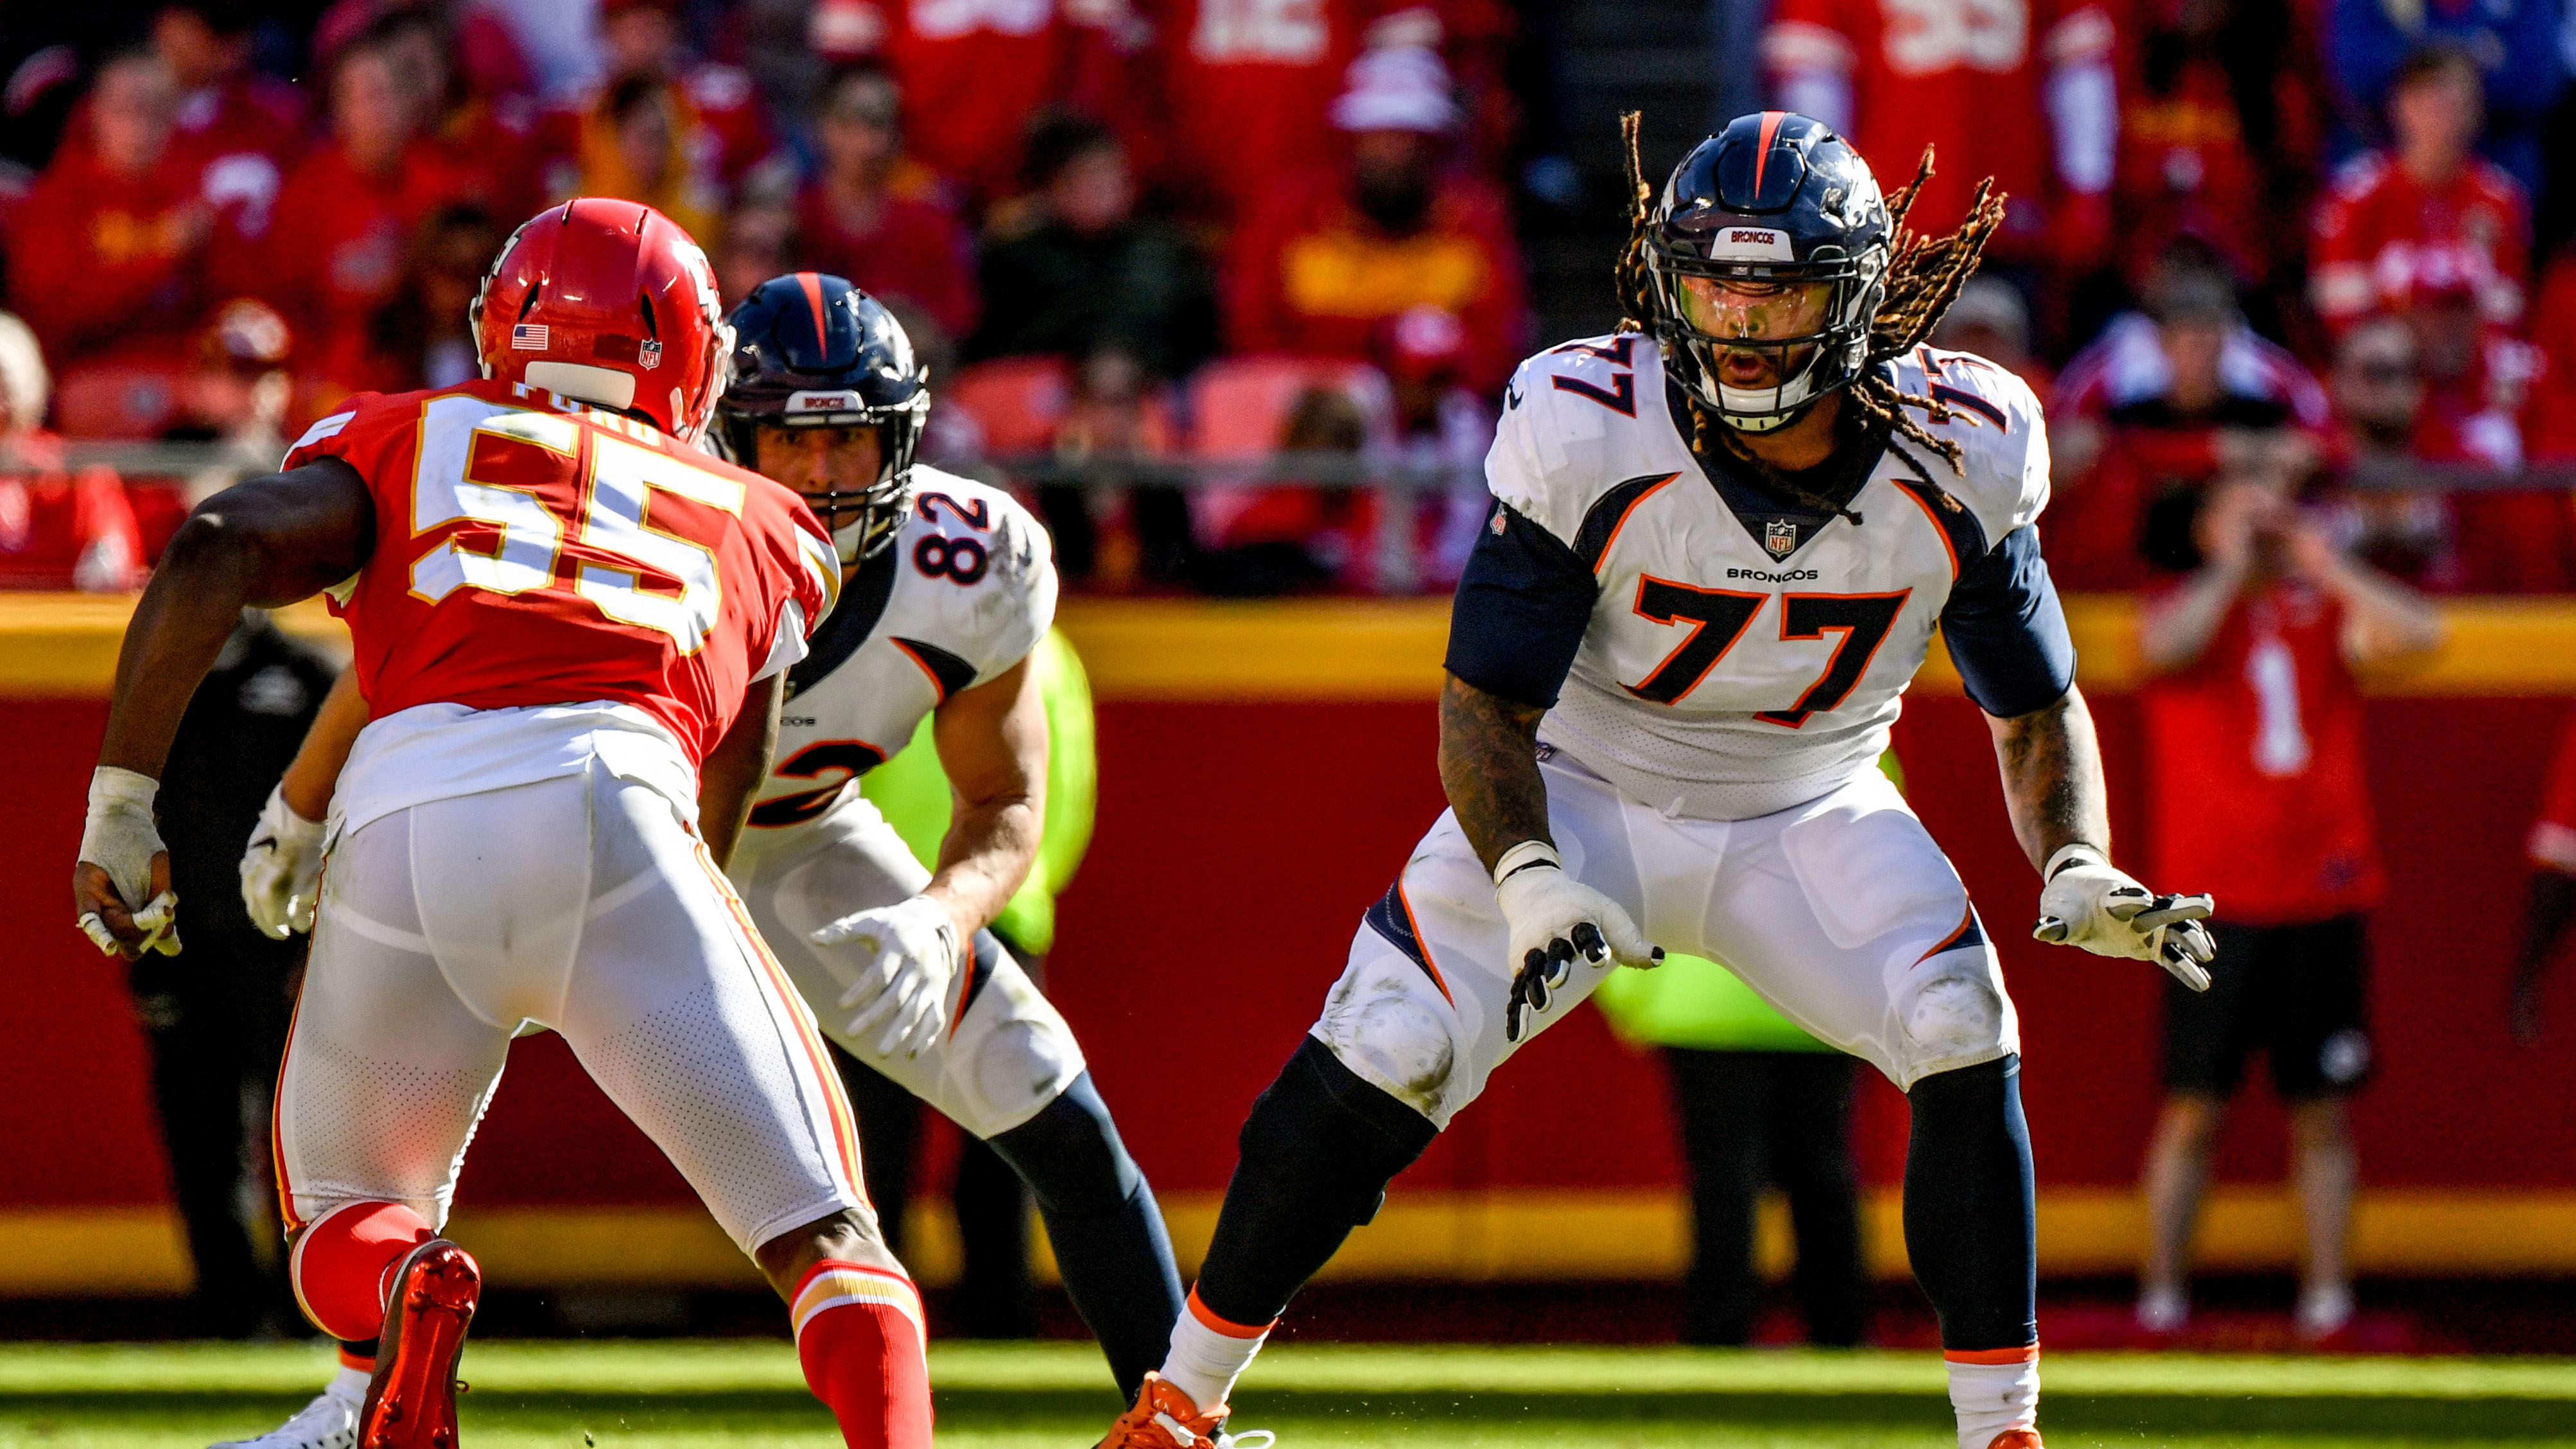 KANSAS CITY, MO - OCTOBER 28: Billy Turner #77 of the Denver Broncos drops back in protection as Dee Ford #55 of the Kansas City Chiefs begins his pass rush during the second half at Arrowhead Stadium on October 28, 2018 in Kansas City, Missouri. (Photo by Peter Aiken/Getty Images)